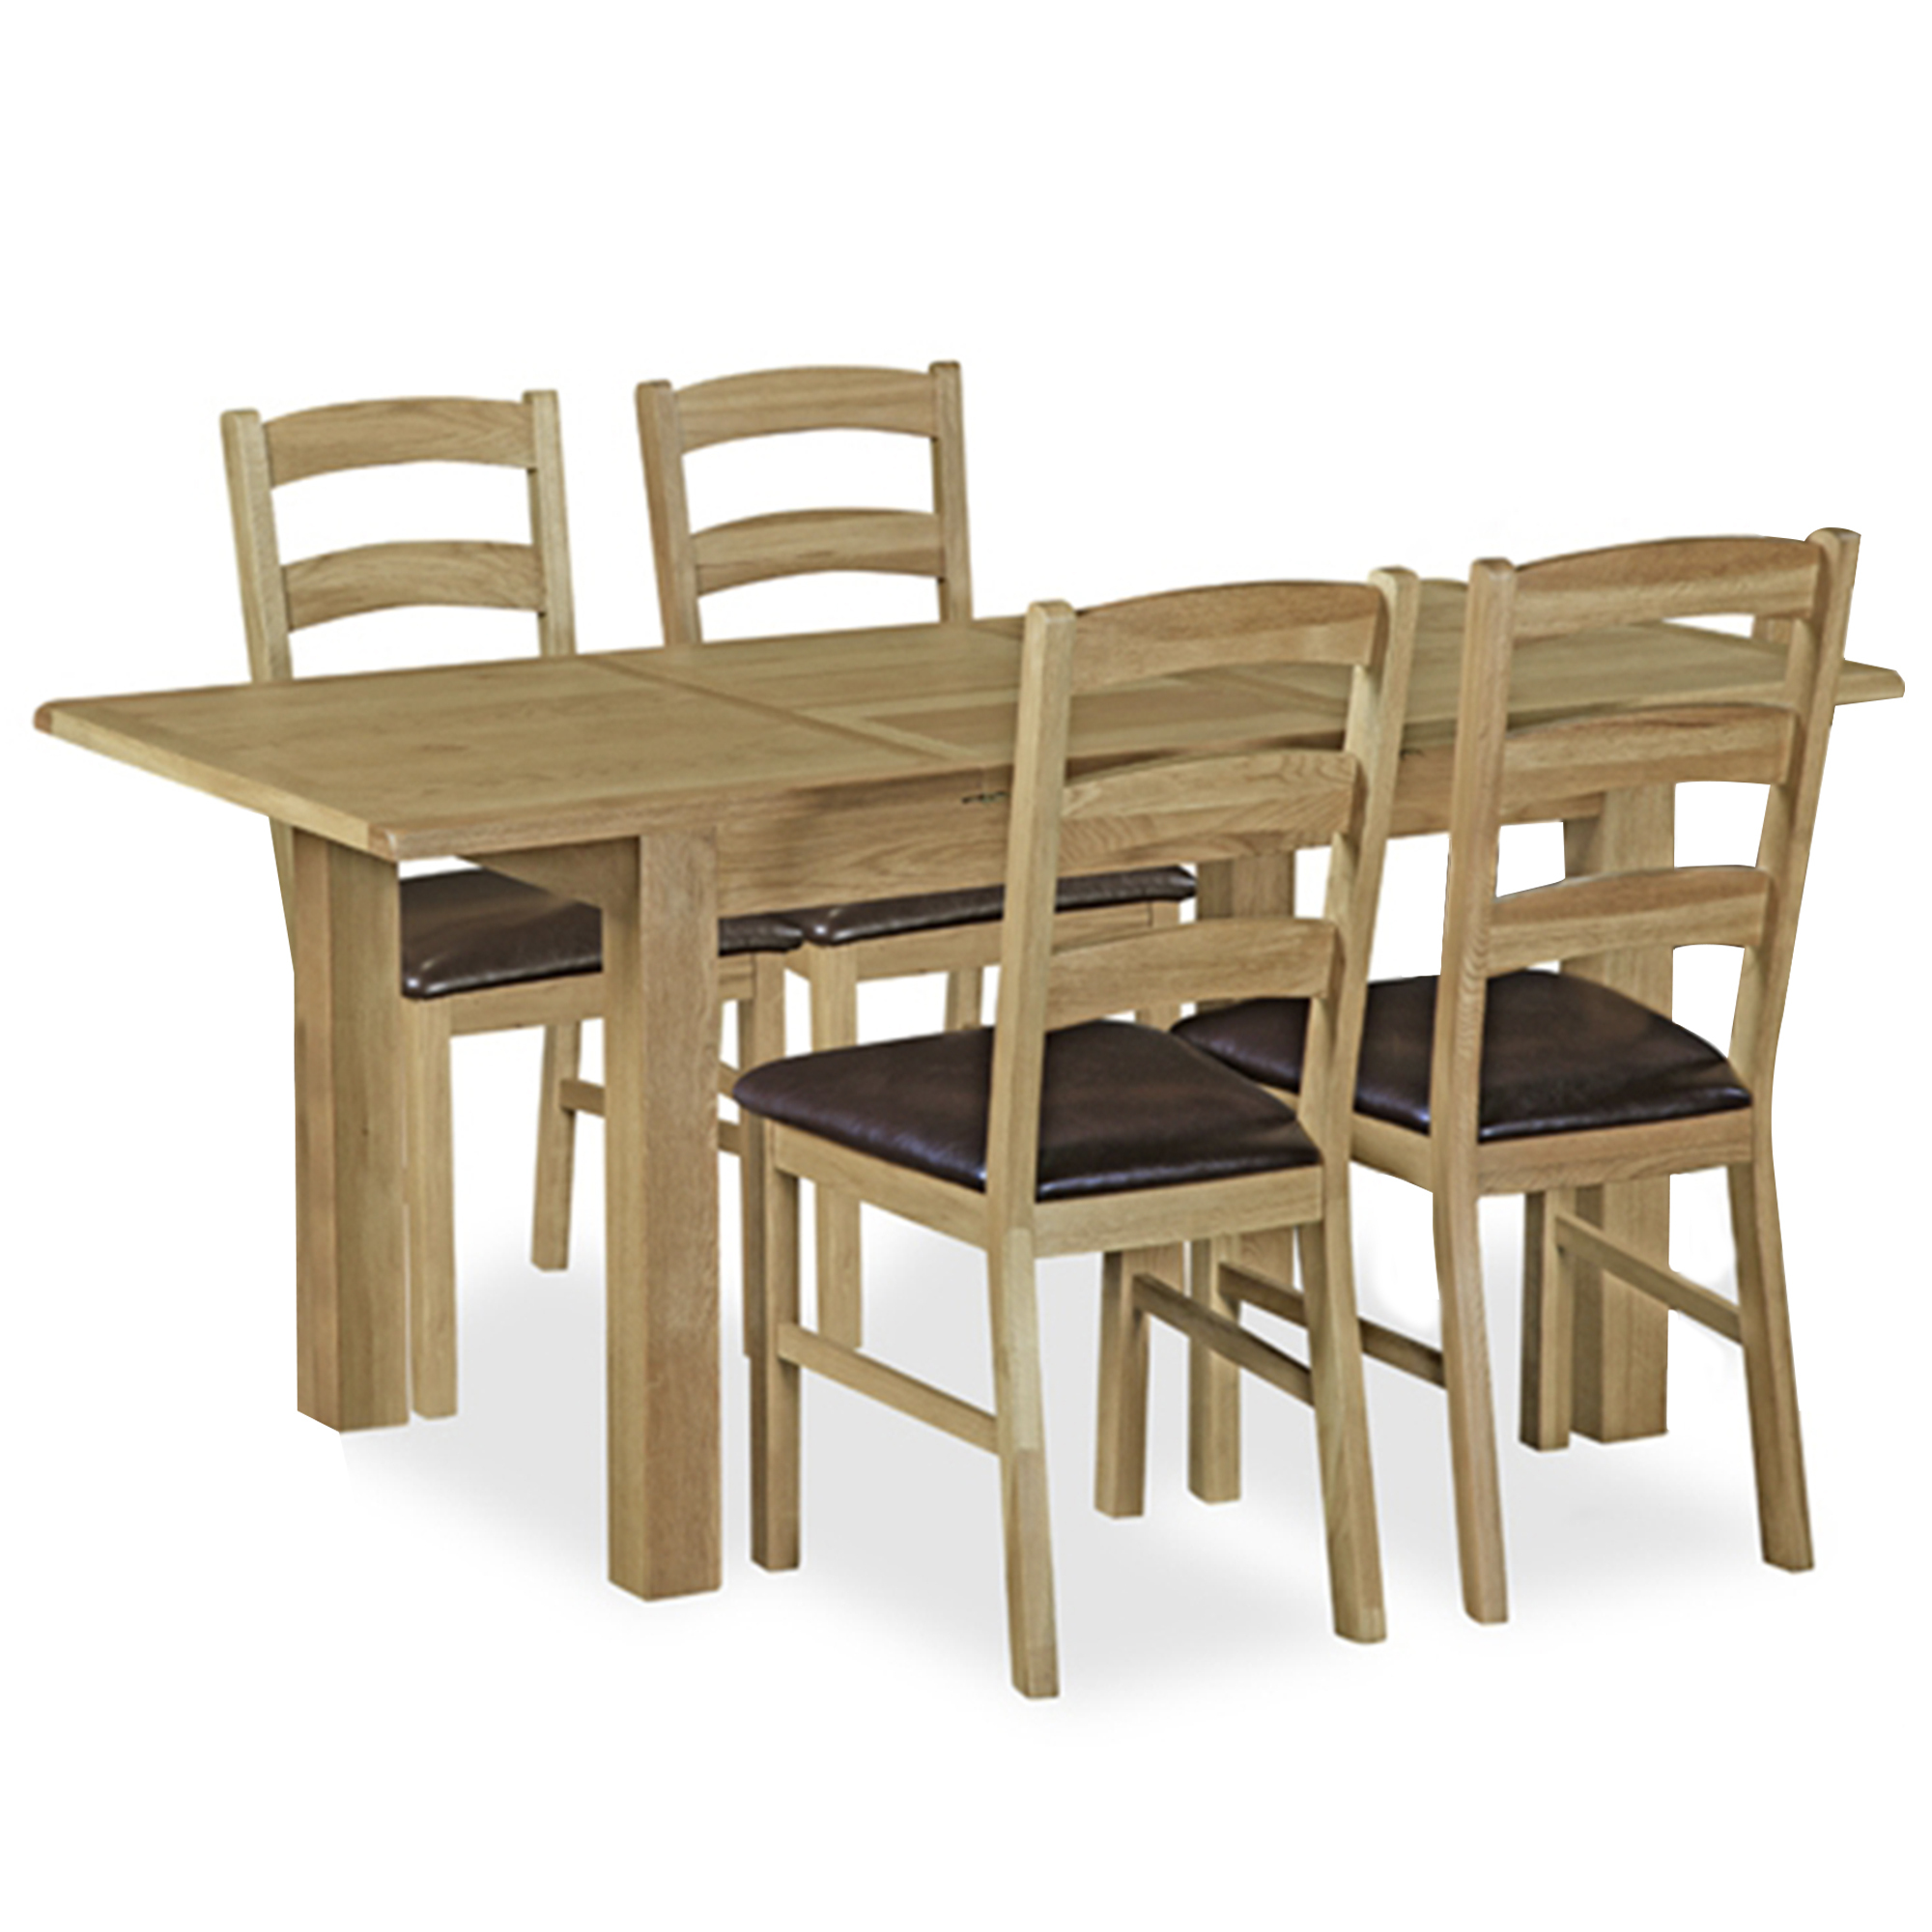 Triumph - 120cm Compact Extending Dining Table & 4 Ladder Back Chairs